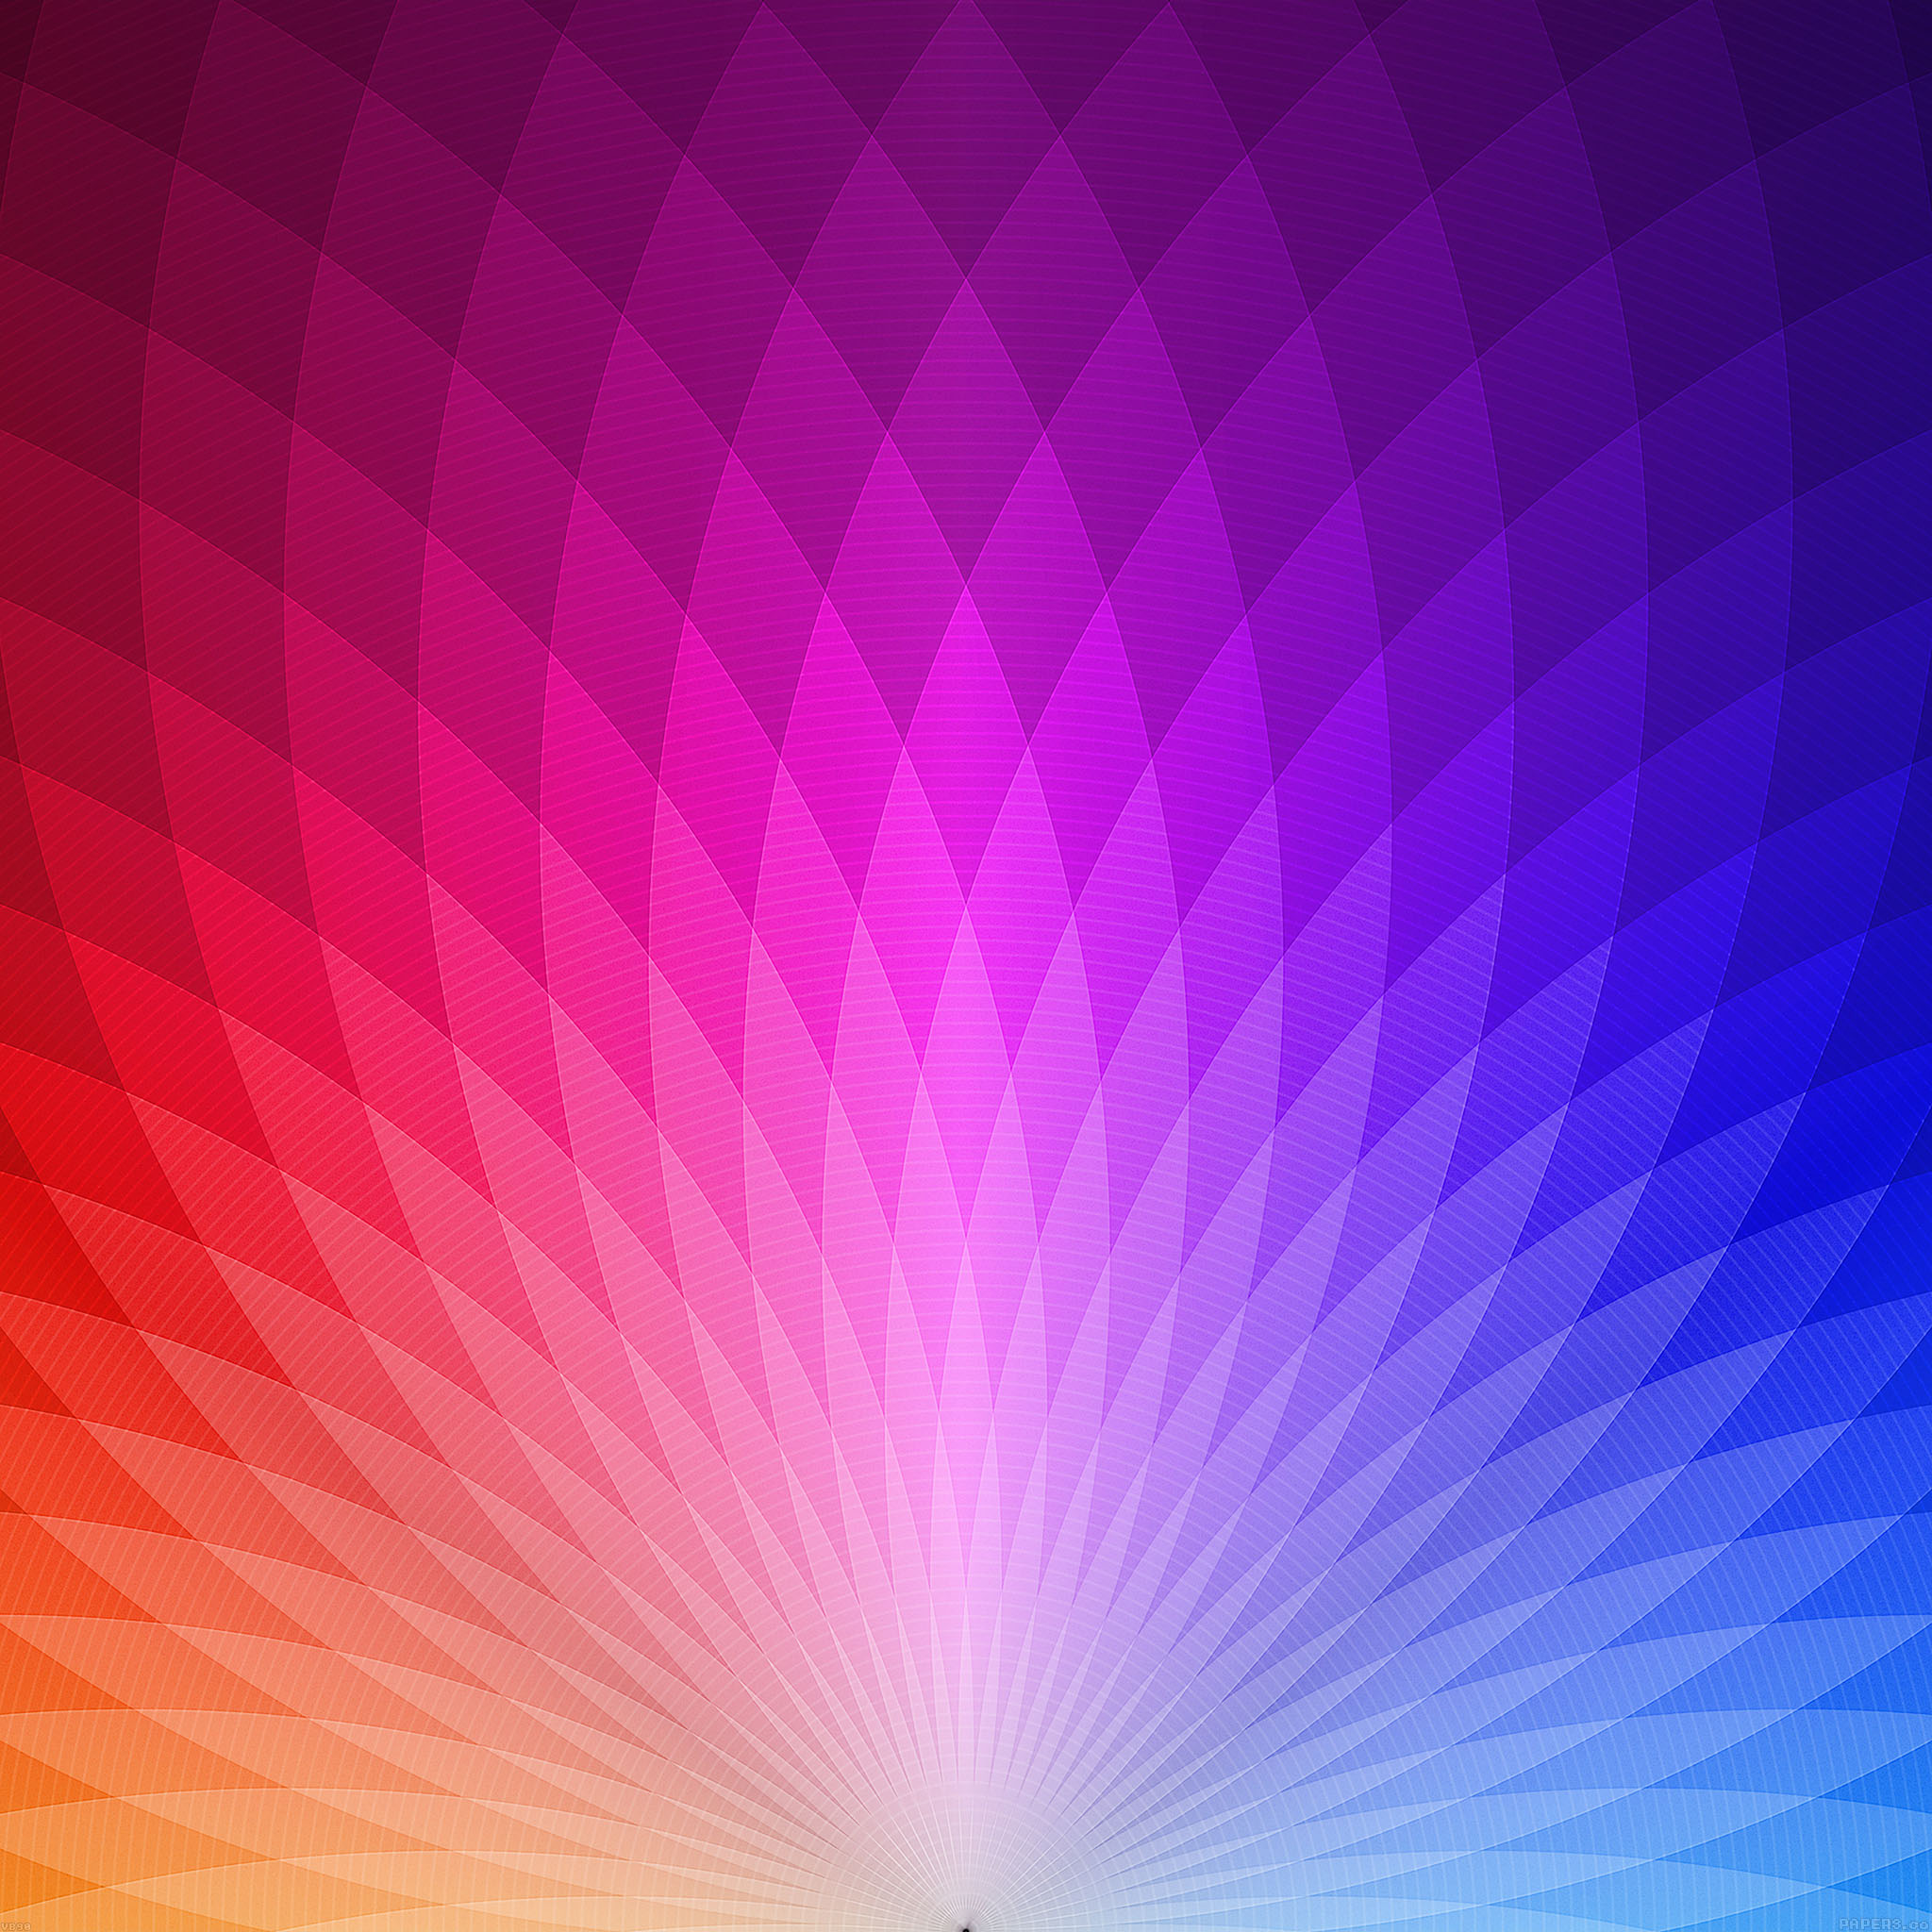 Vb90-wallpaper-rainbow-patterns-art - Parallax